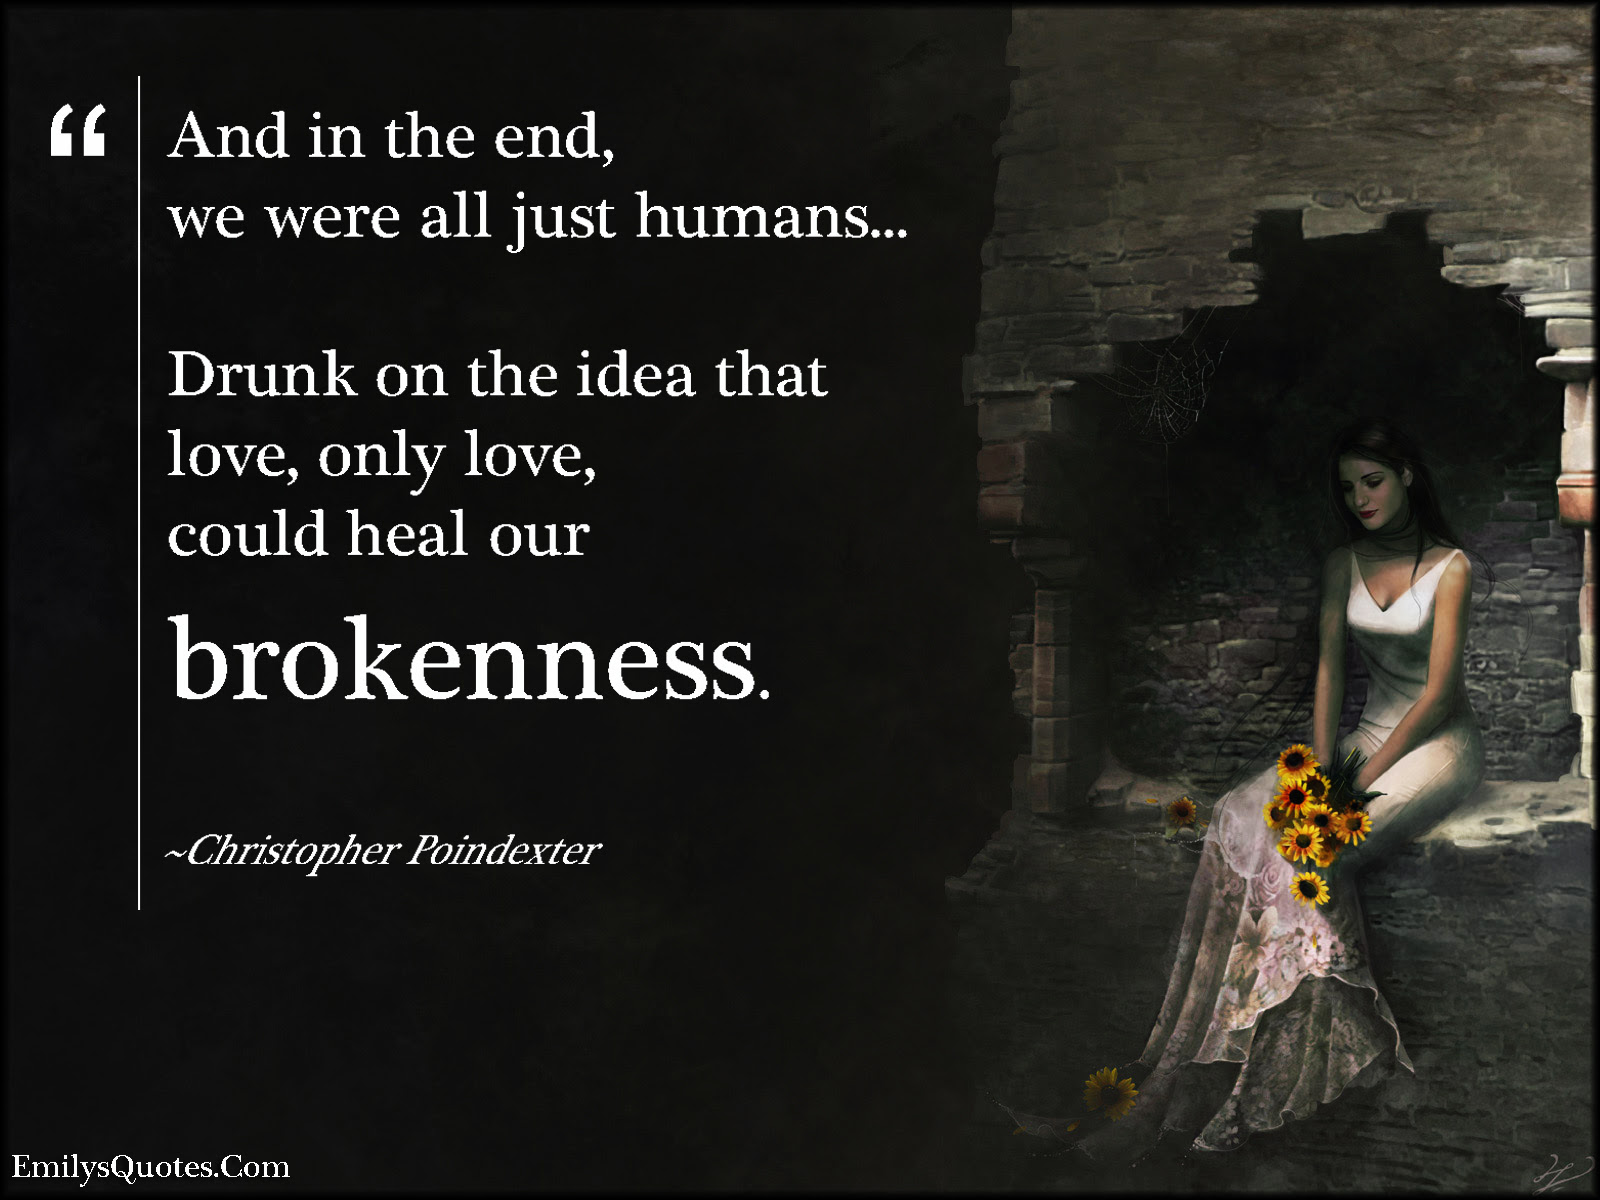 sad love brokenness amazing Christopher Poindexter ""